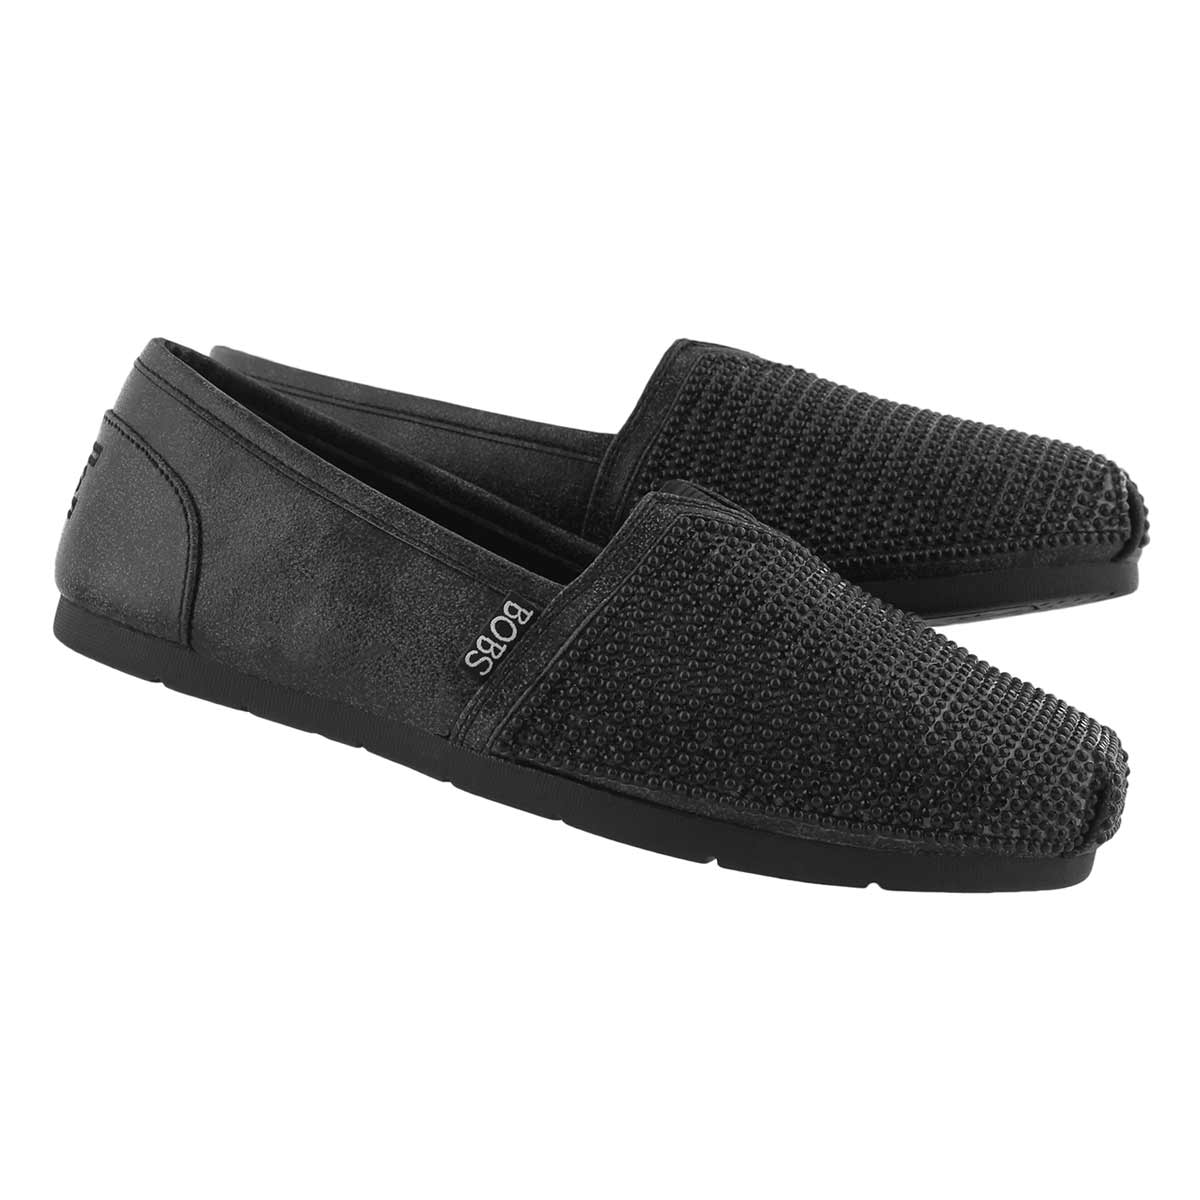 Lds Bobs Luxe Big Dreamer blk slip on